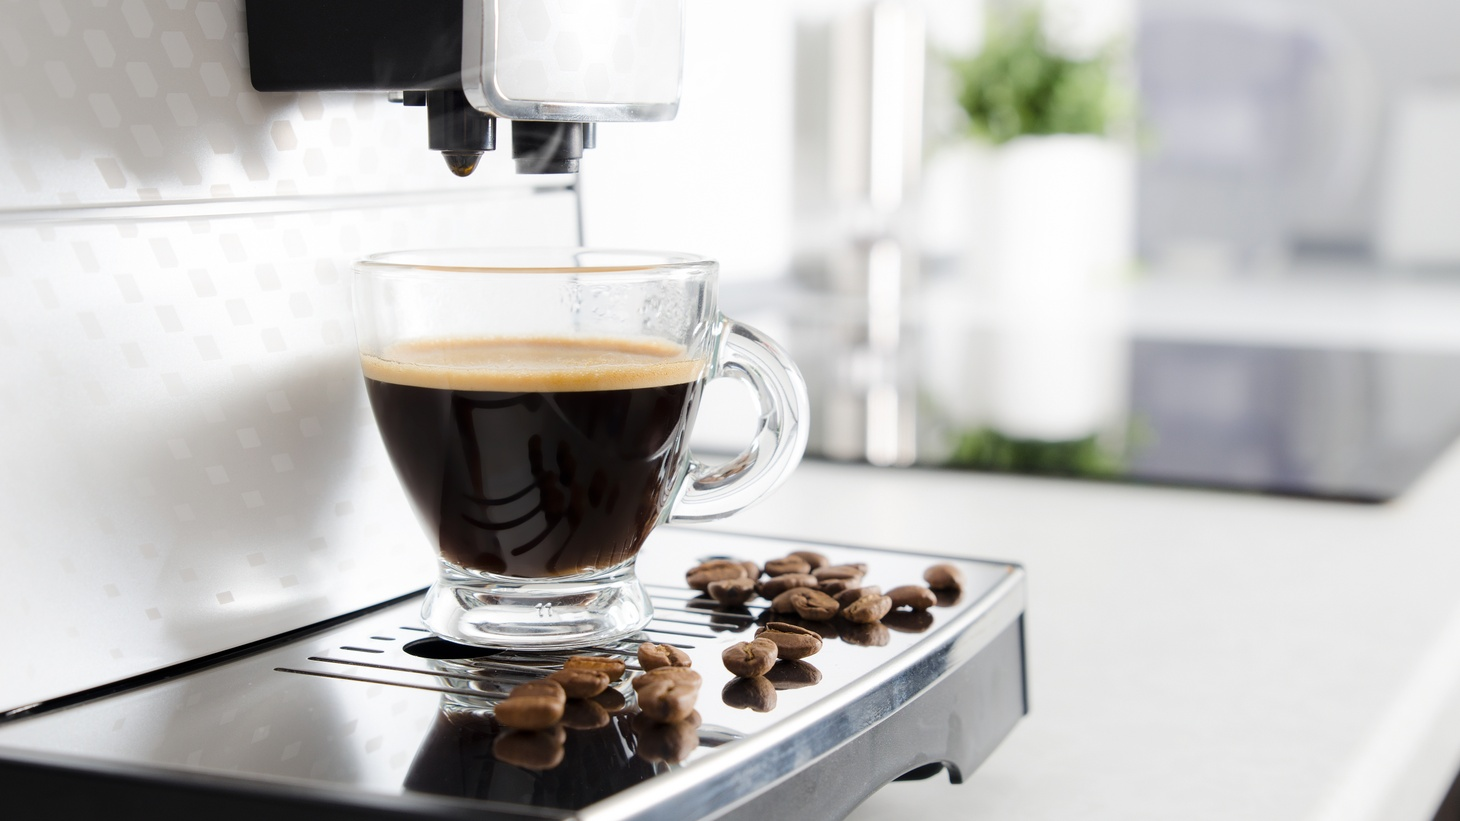 Home espresso machines are selling out online.